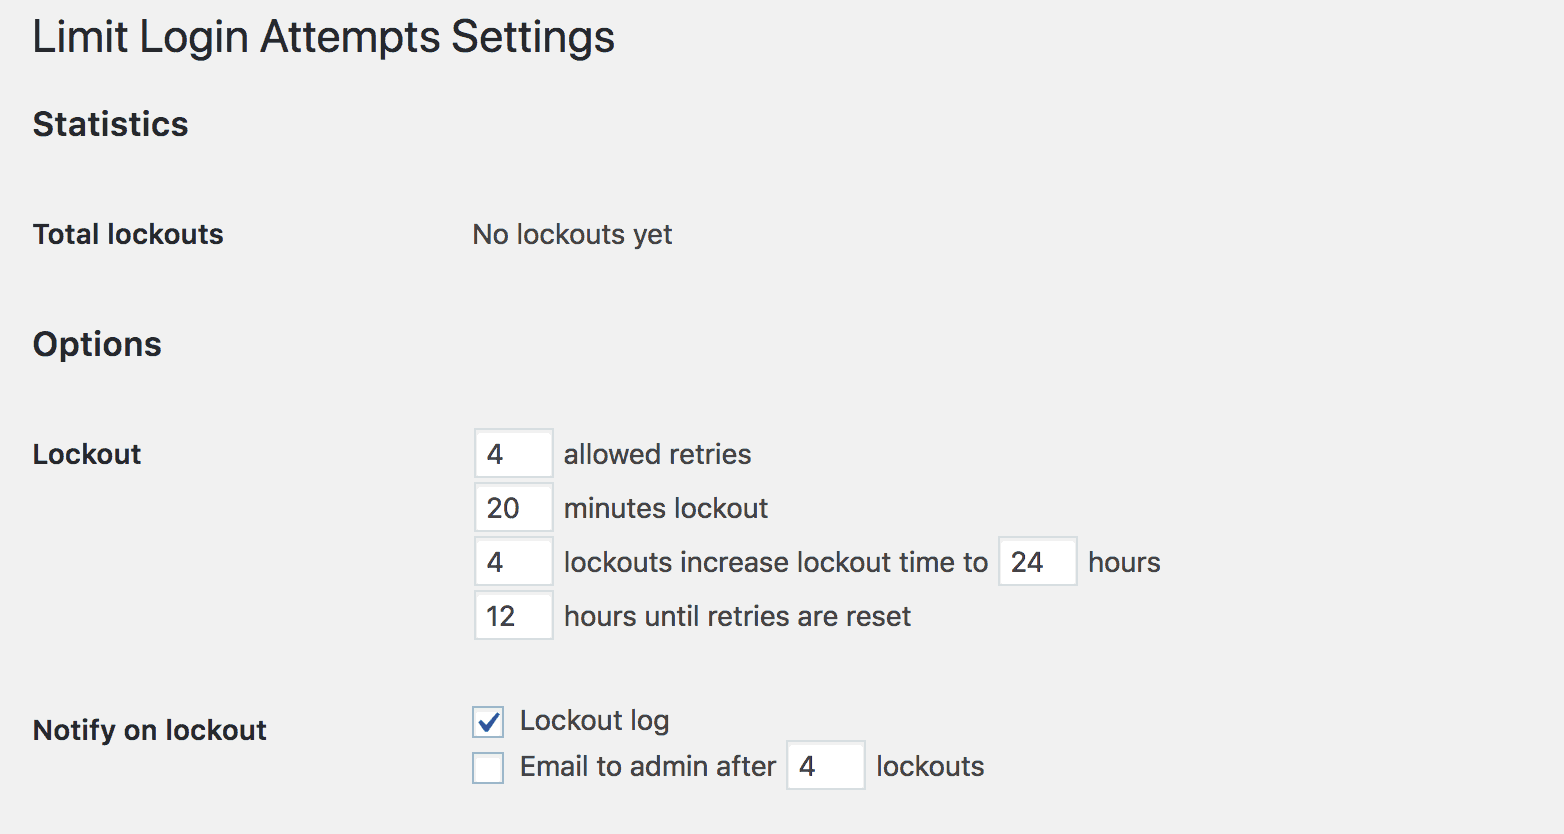 Configuring the settings for Limit Login Attempts Reloaded.